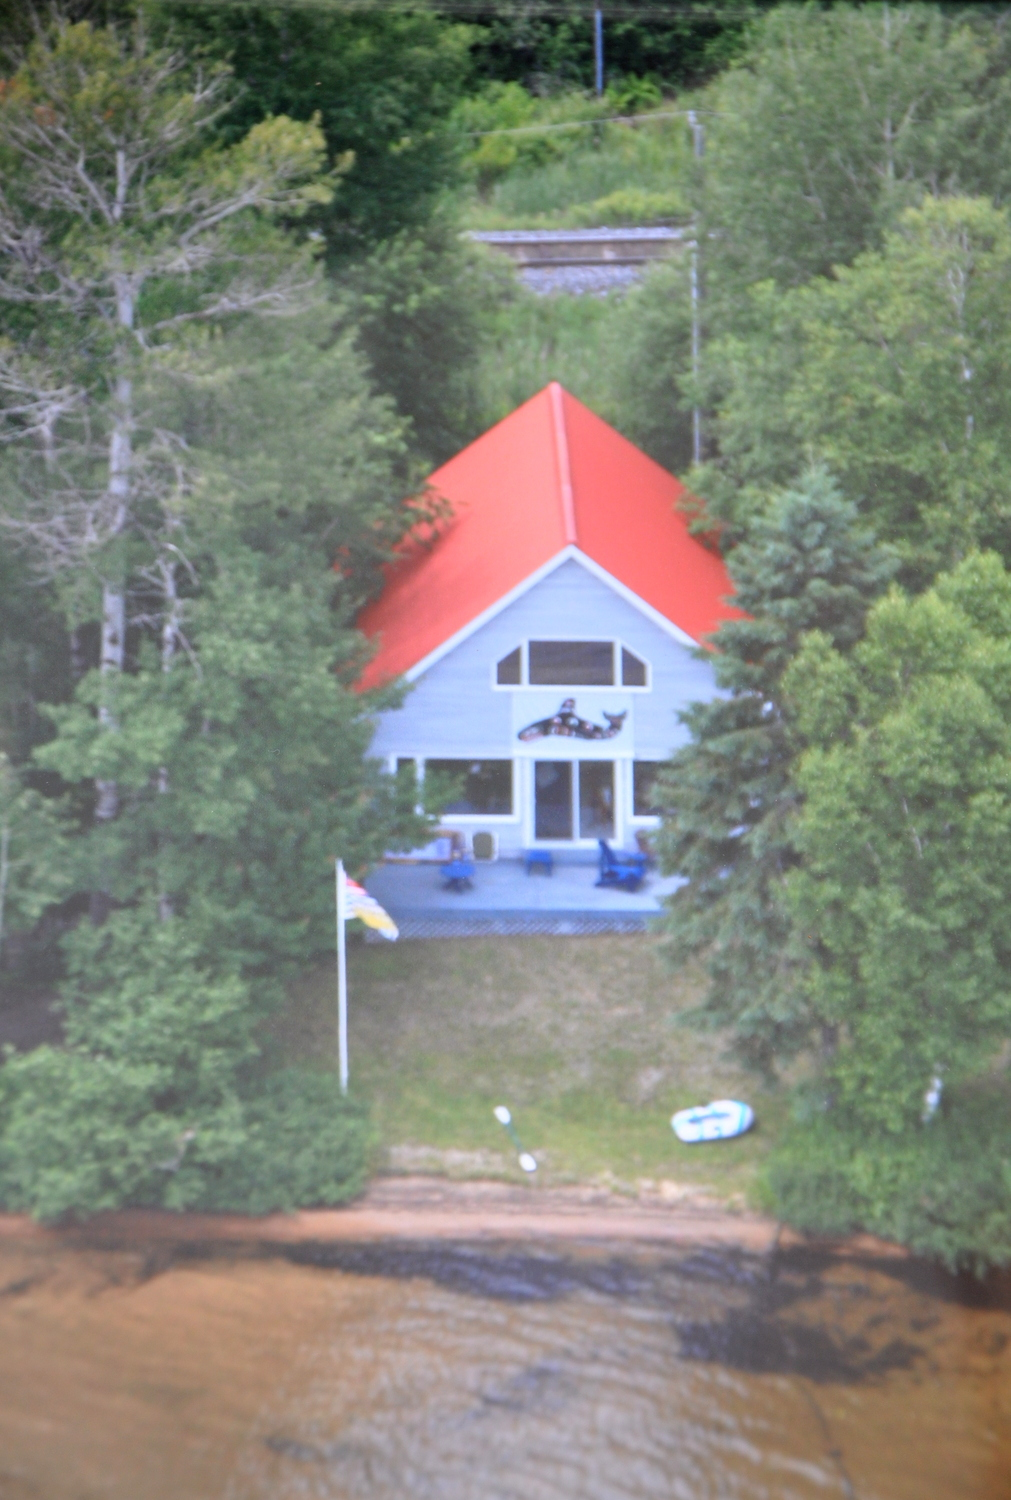 rent a cottage ontario by the lake interior design photos gallery u2022 rh blog delace co